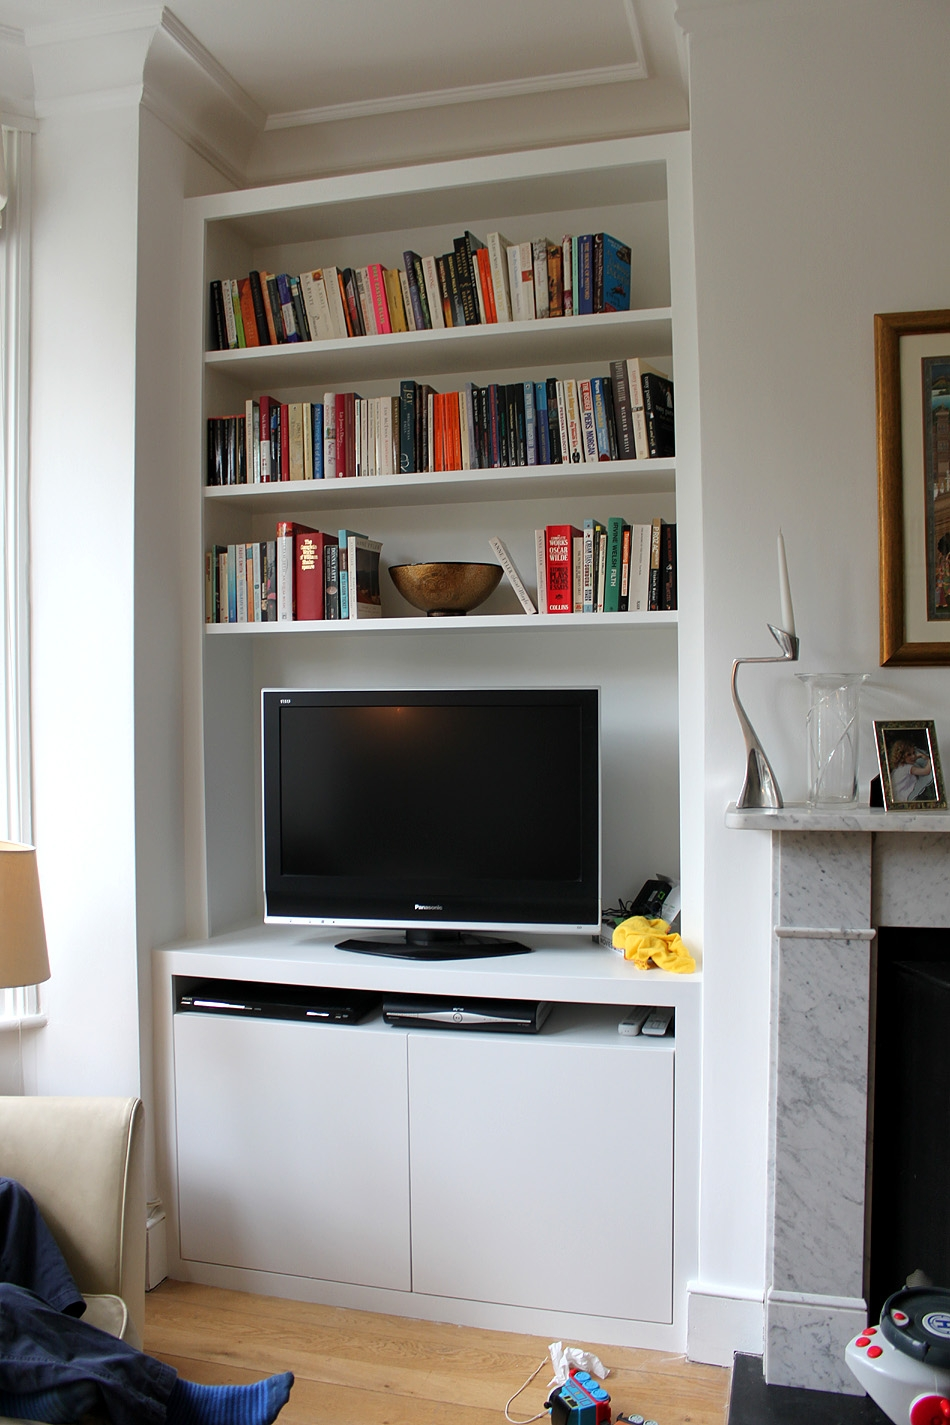 Fitted Wardrobes Bookcases Shelving Floating Shelves London With Bespoke Tv Cabinets (View 8 of 15)